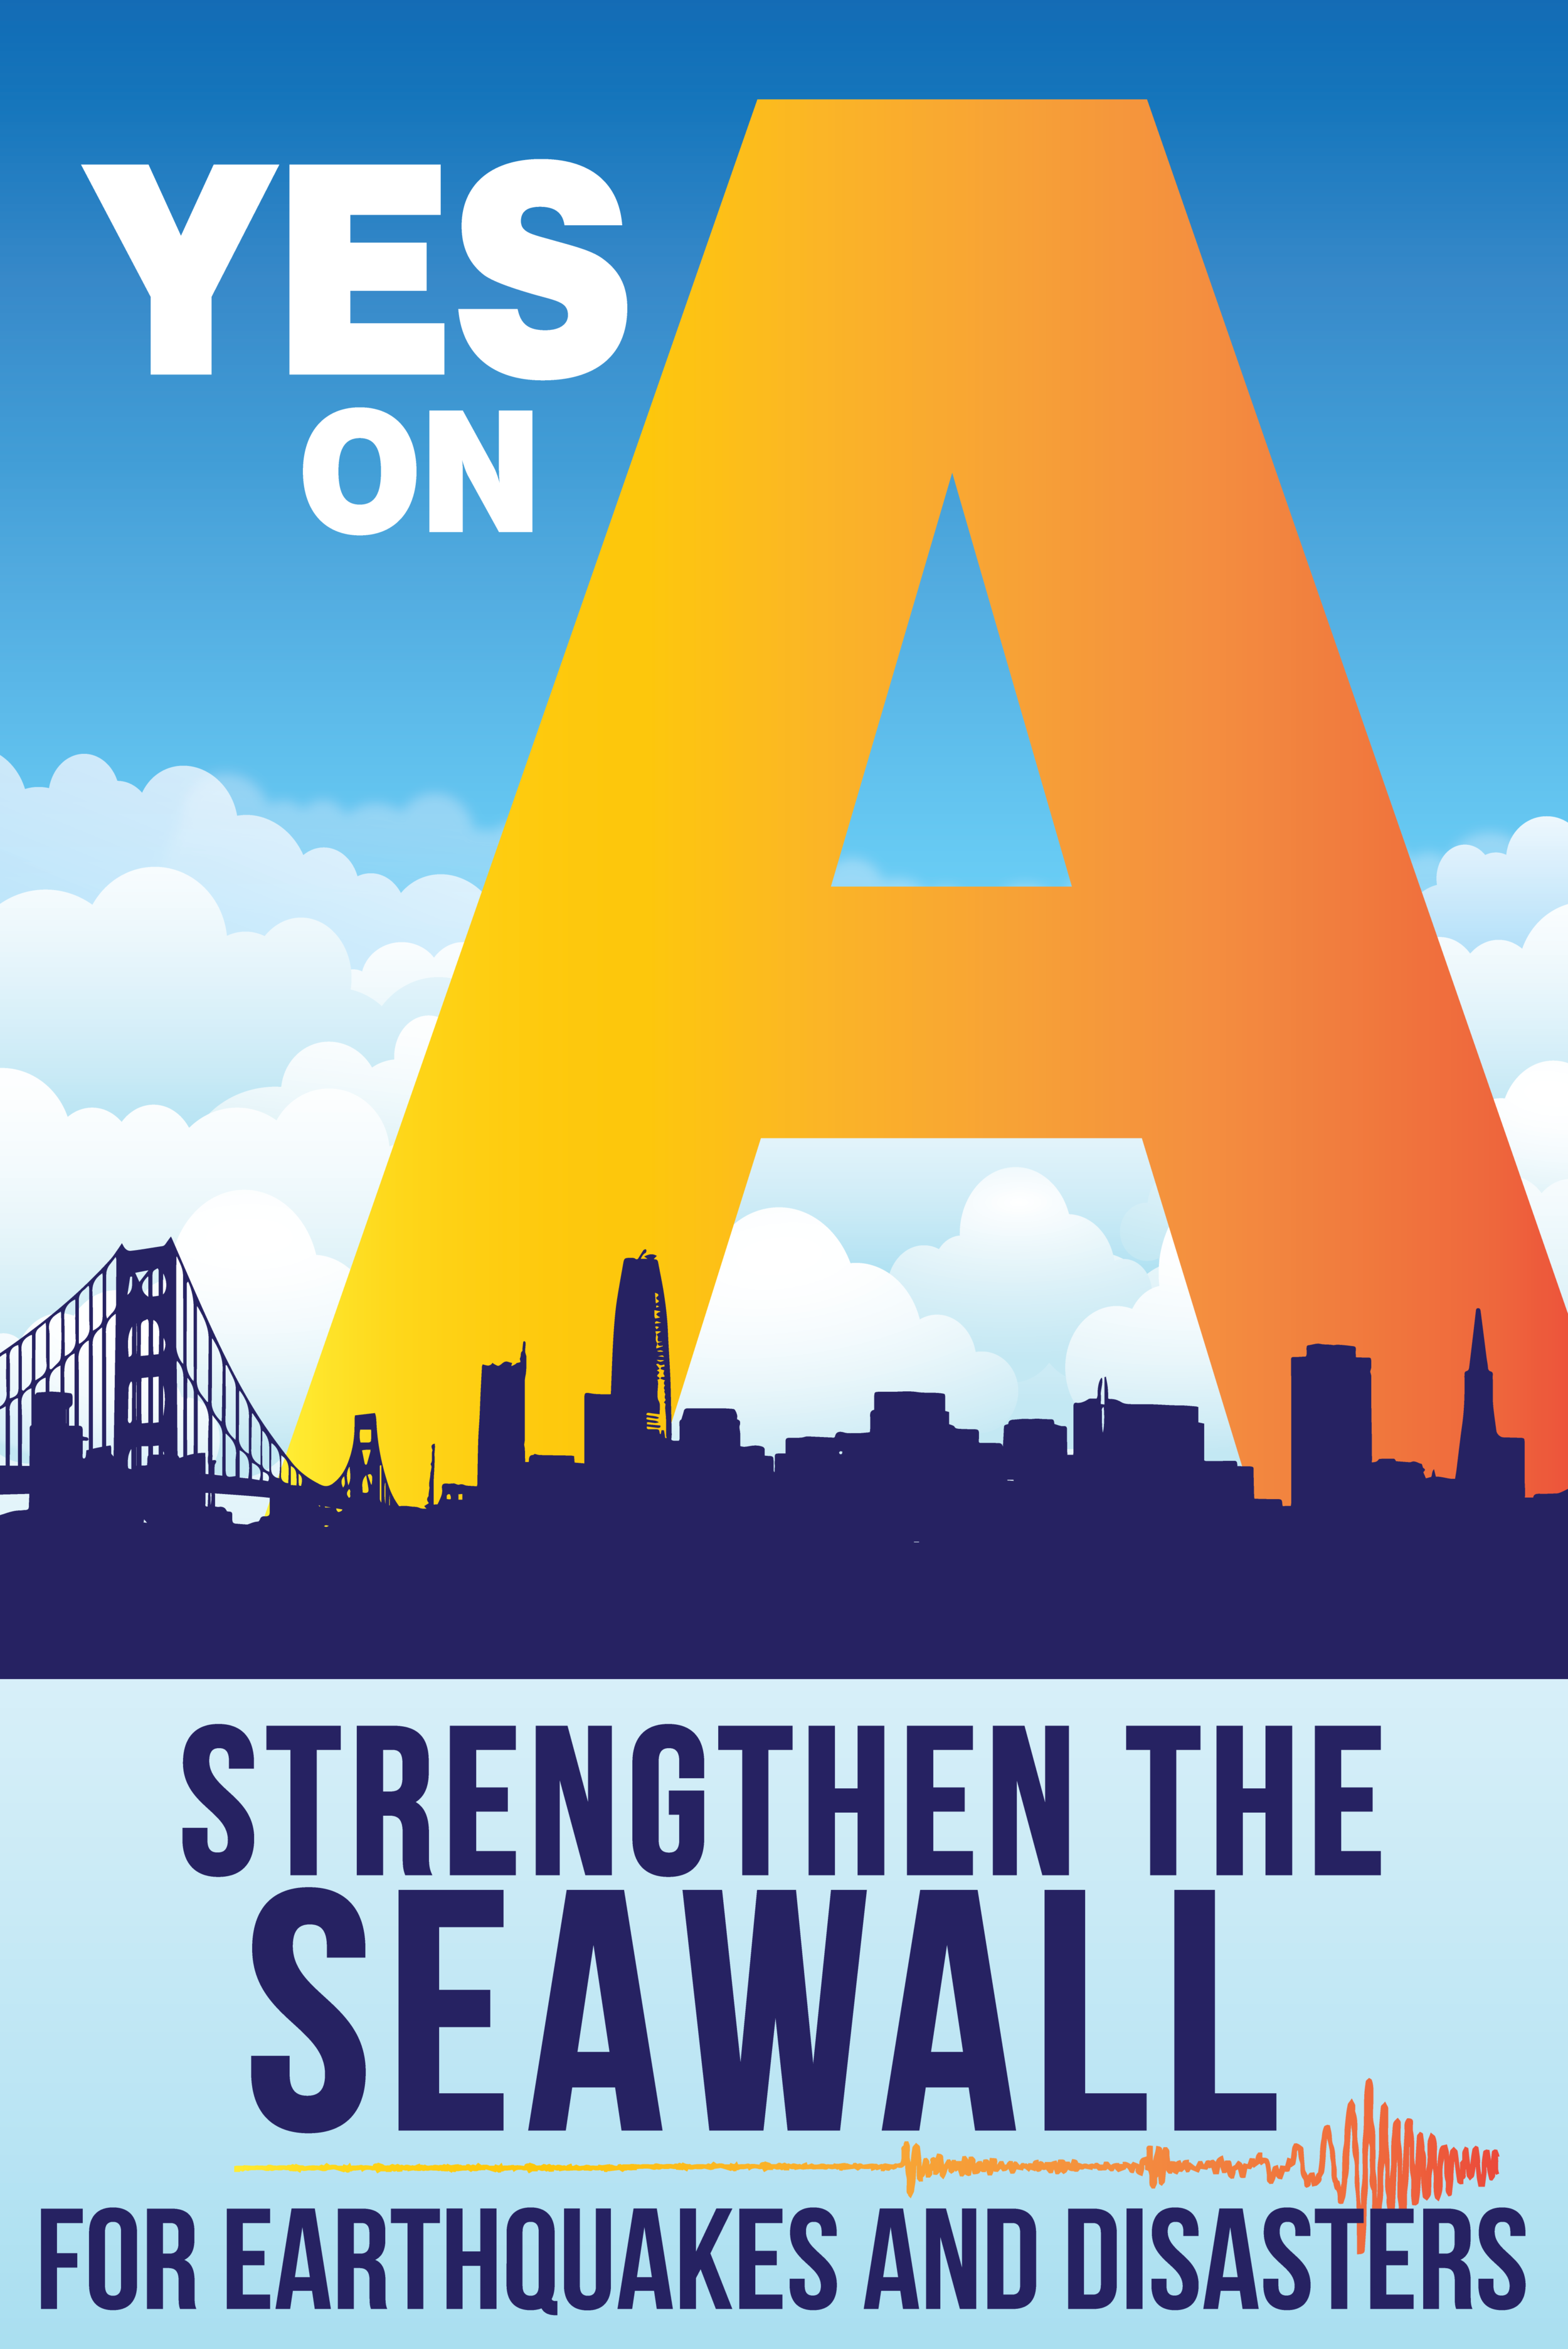 Yes on A-Logo-Sign-Strengthen the Seawall for Earthquakes and Disasters - full size.png